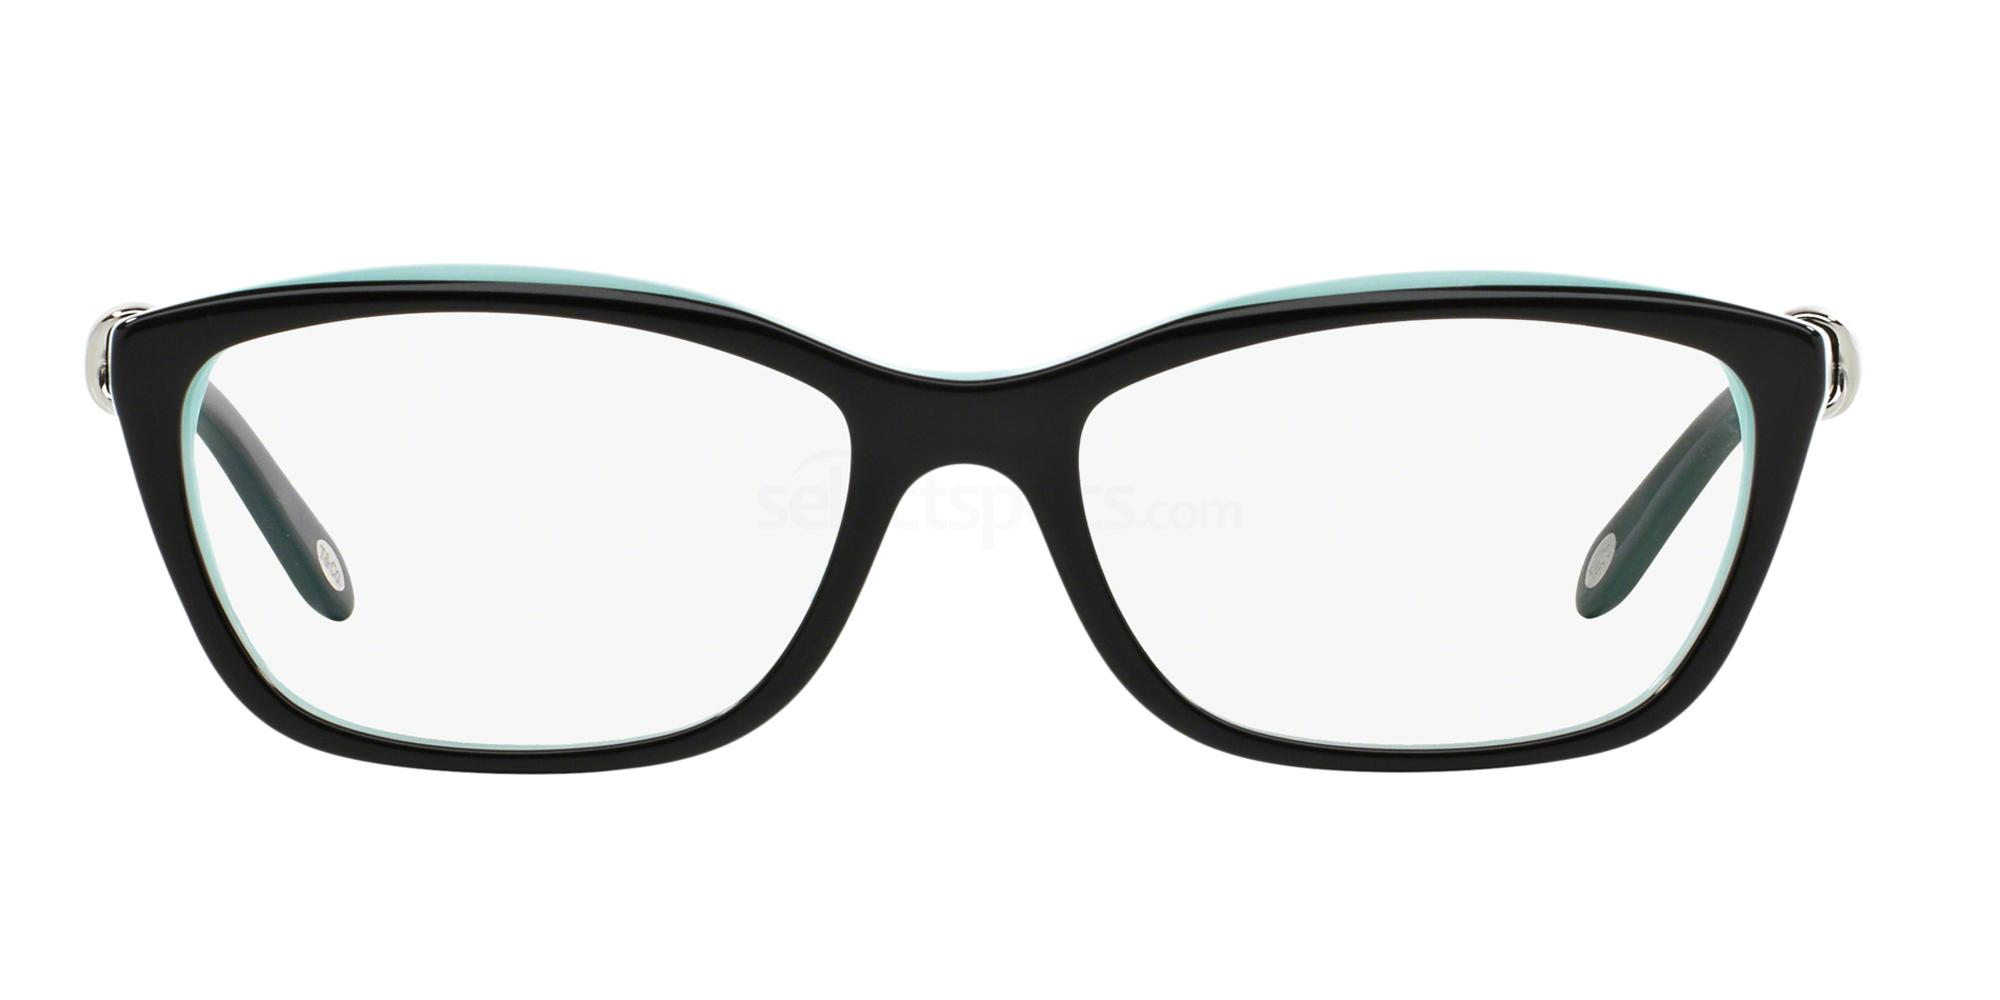 ce1c9afd59 Tiffany & Co. TF2074 glasses. Free lenses & delivery   SelectSpecs ...